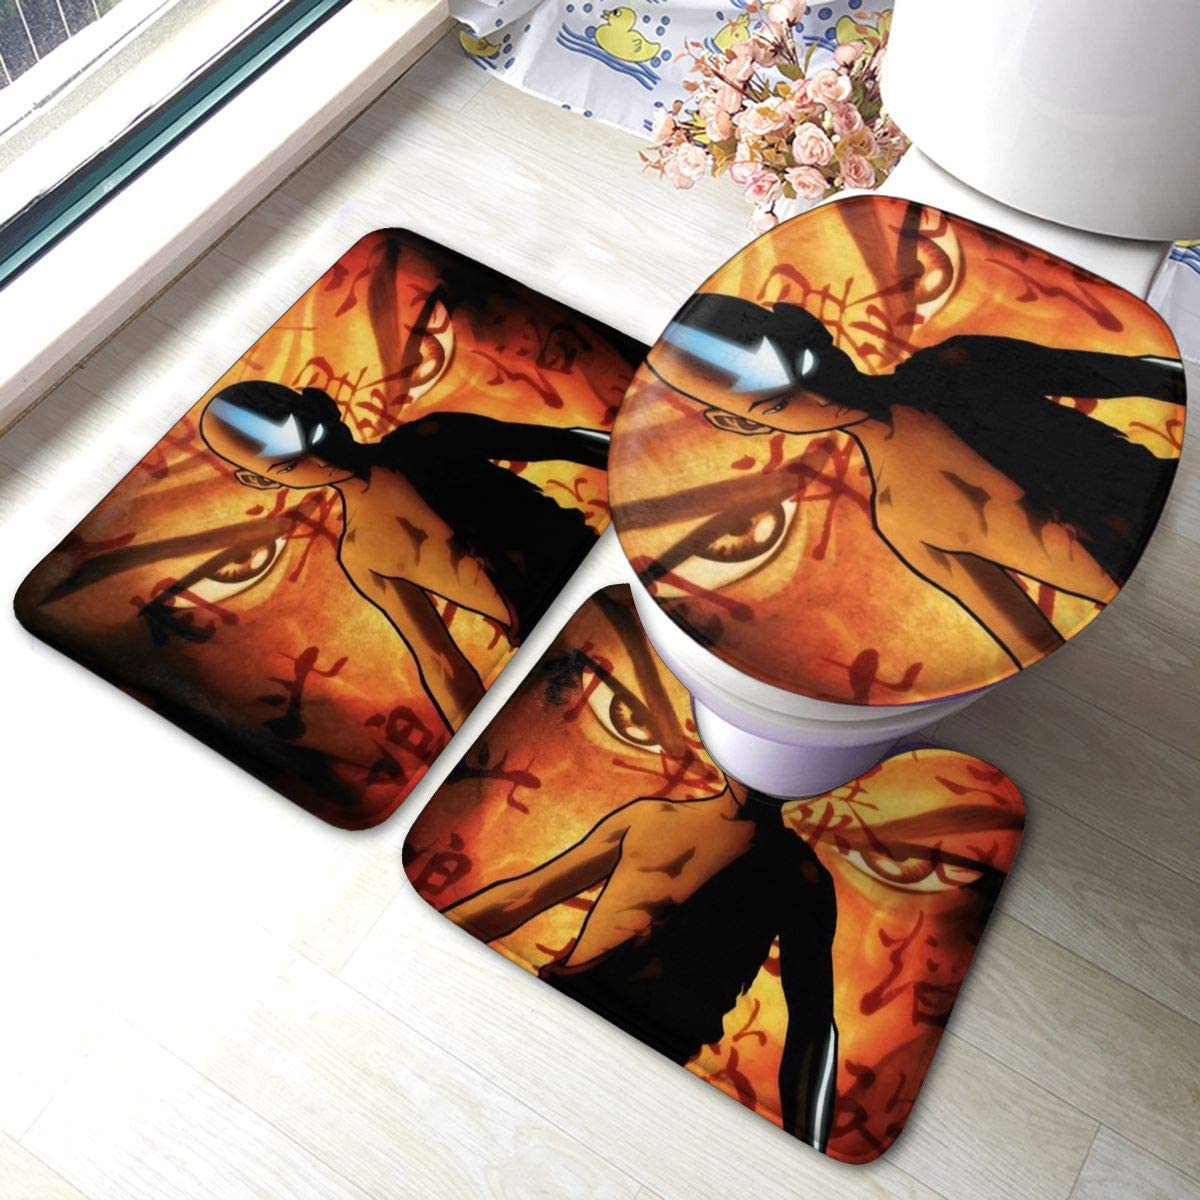 The Last Legend Airbender of Korra Aang Bathroom Rugs Set Rubber-Backed Non-Slip 3 Piece Toilet Set Durable Bathroom Mats, Non-Slip Bathroom Floor Mat+ U-Shaped Toilet Mat + Toilet Seat Cover